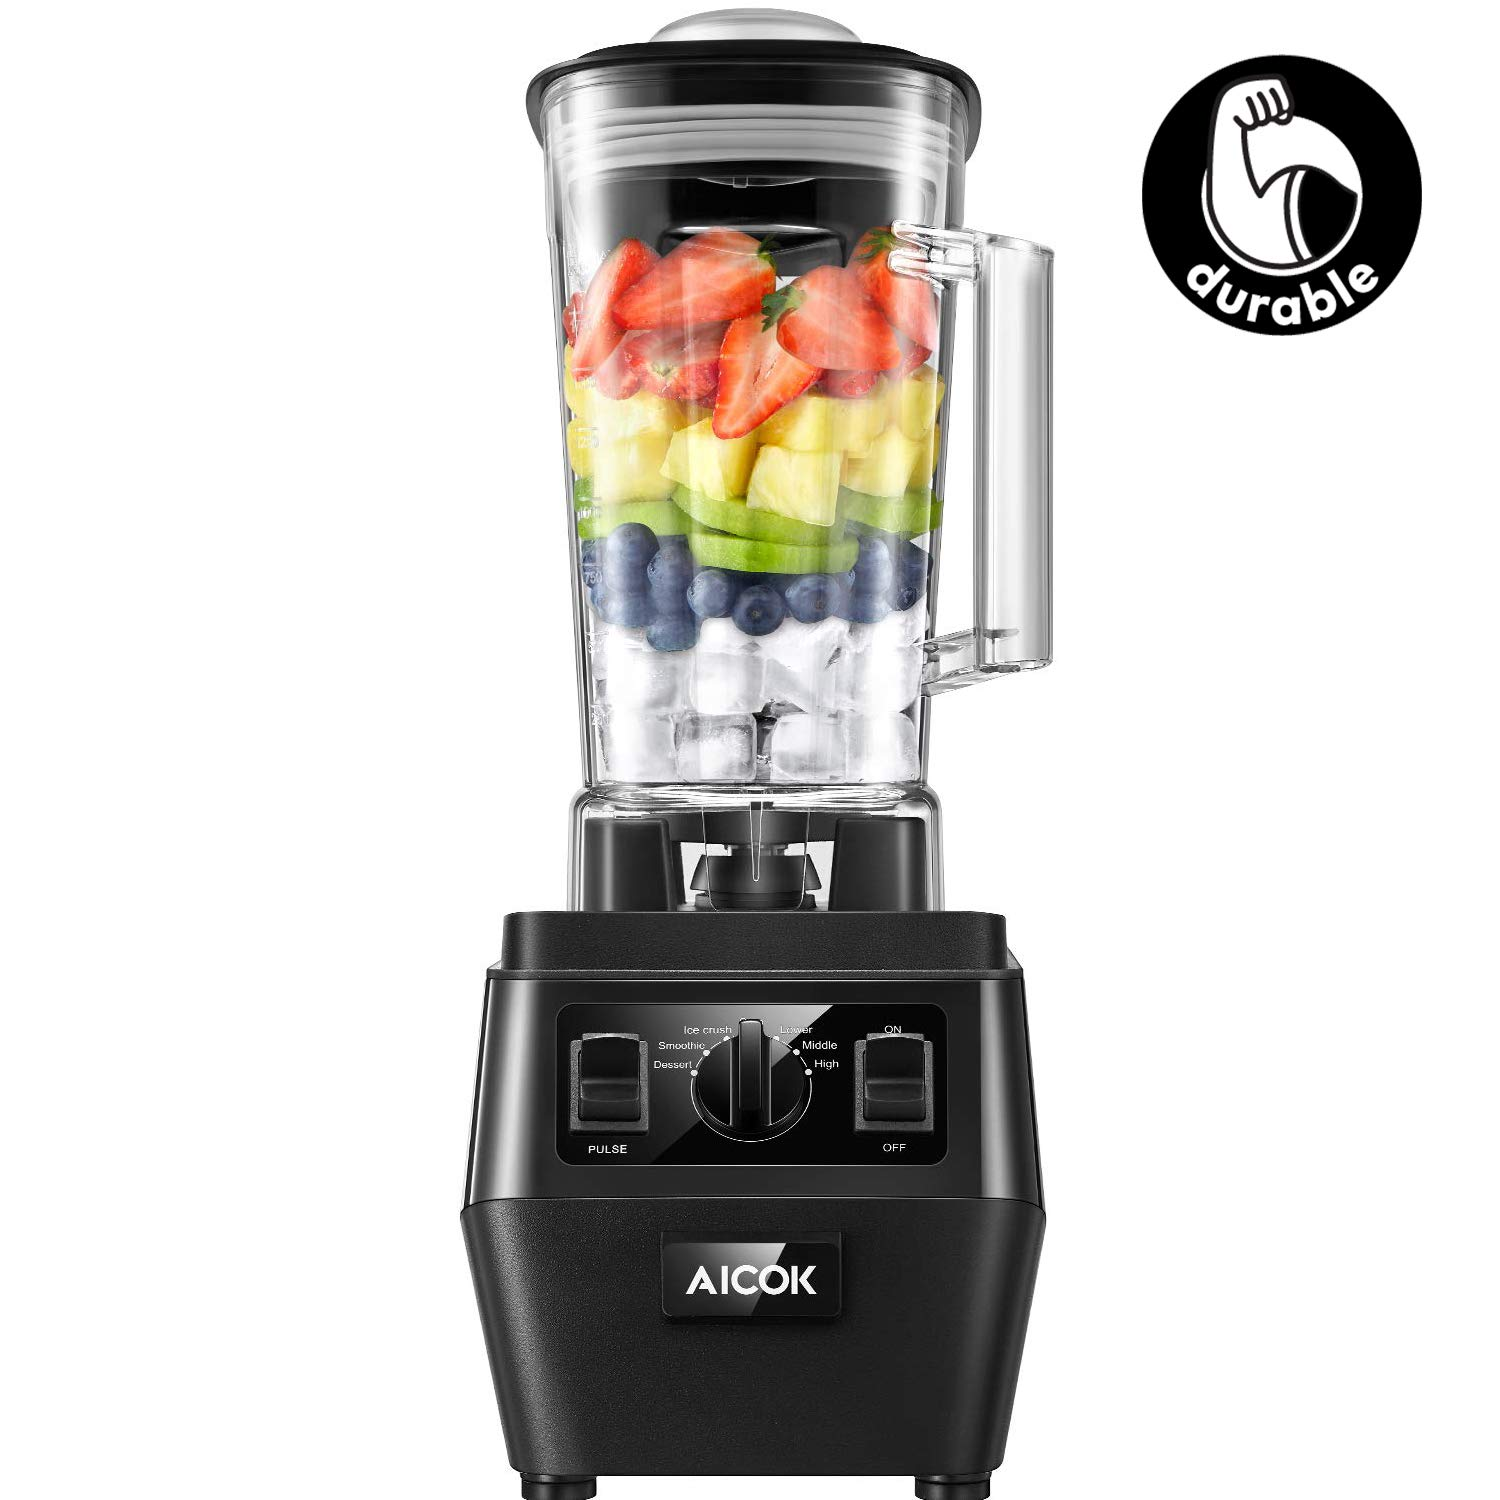 AICOK Blender, Professional Countertop Durable Blender for Shakes and Smoothies, Ice Crushing, Frozen Drinks with Dishwasher Safe 70oz BPA-Free Tritan Jar, 1400W (2019 Version) by AICOK